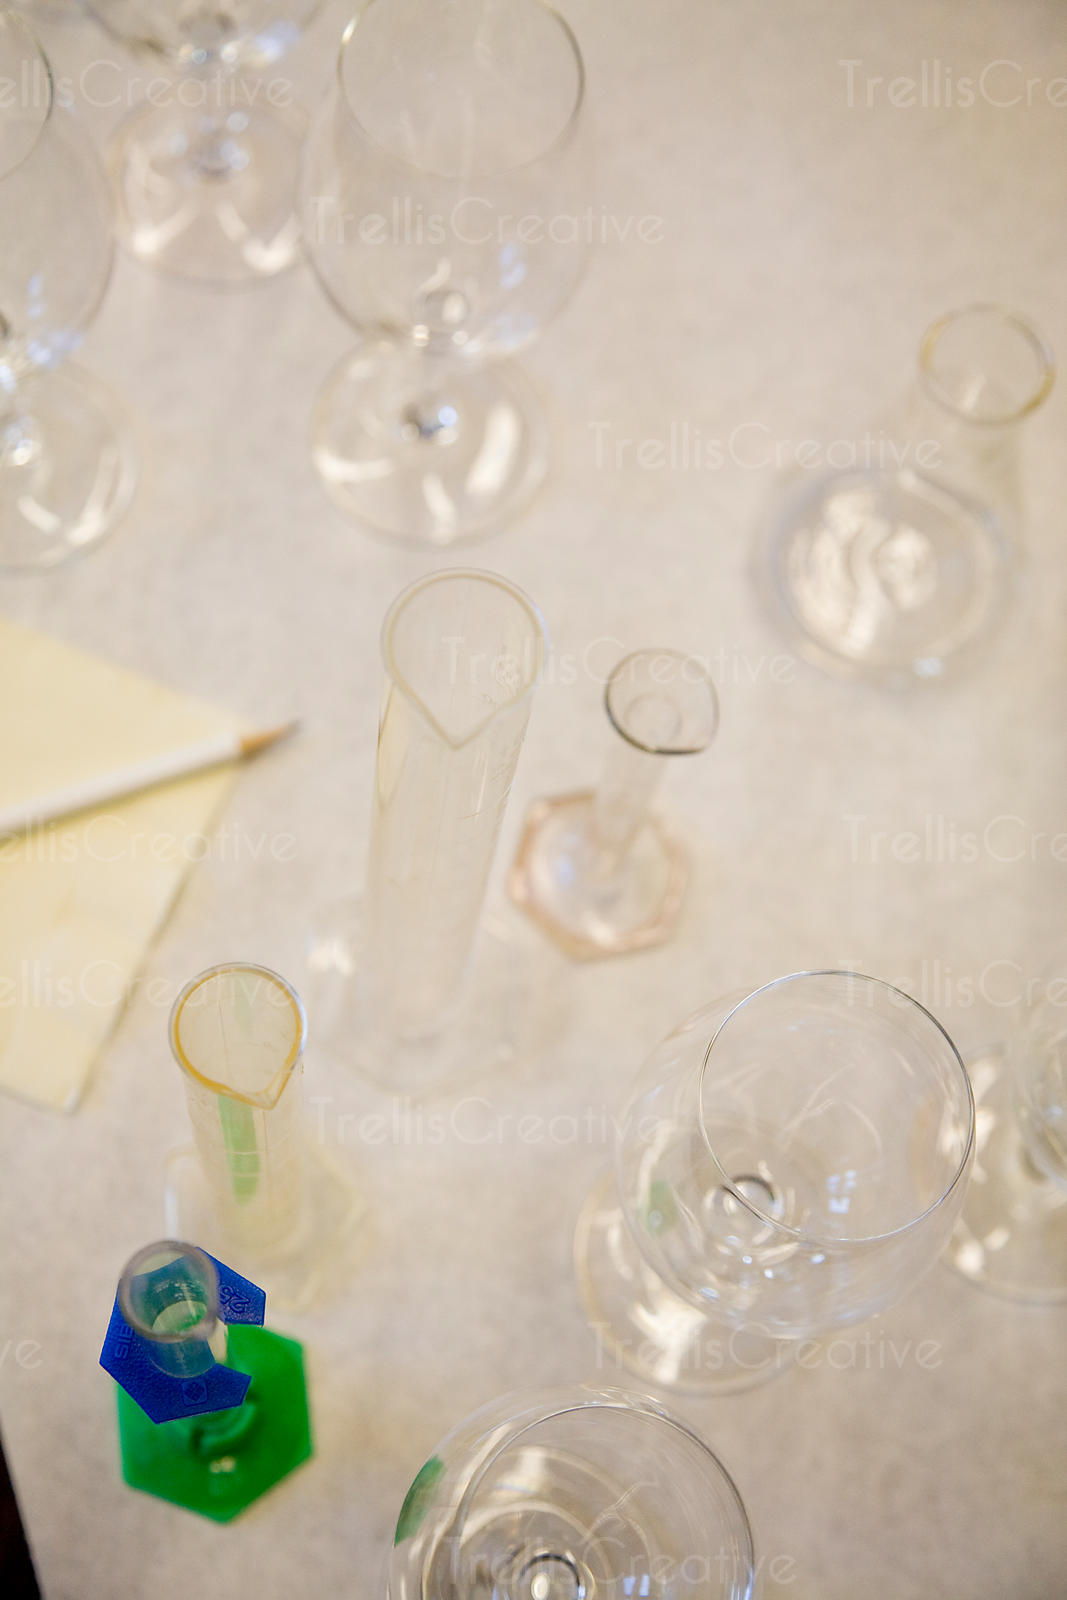 Looking down on empty glass beakers and wine glasses for testing chemical components in wine